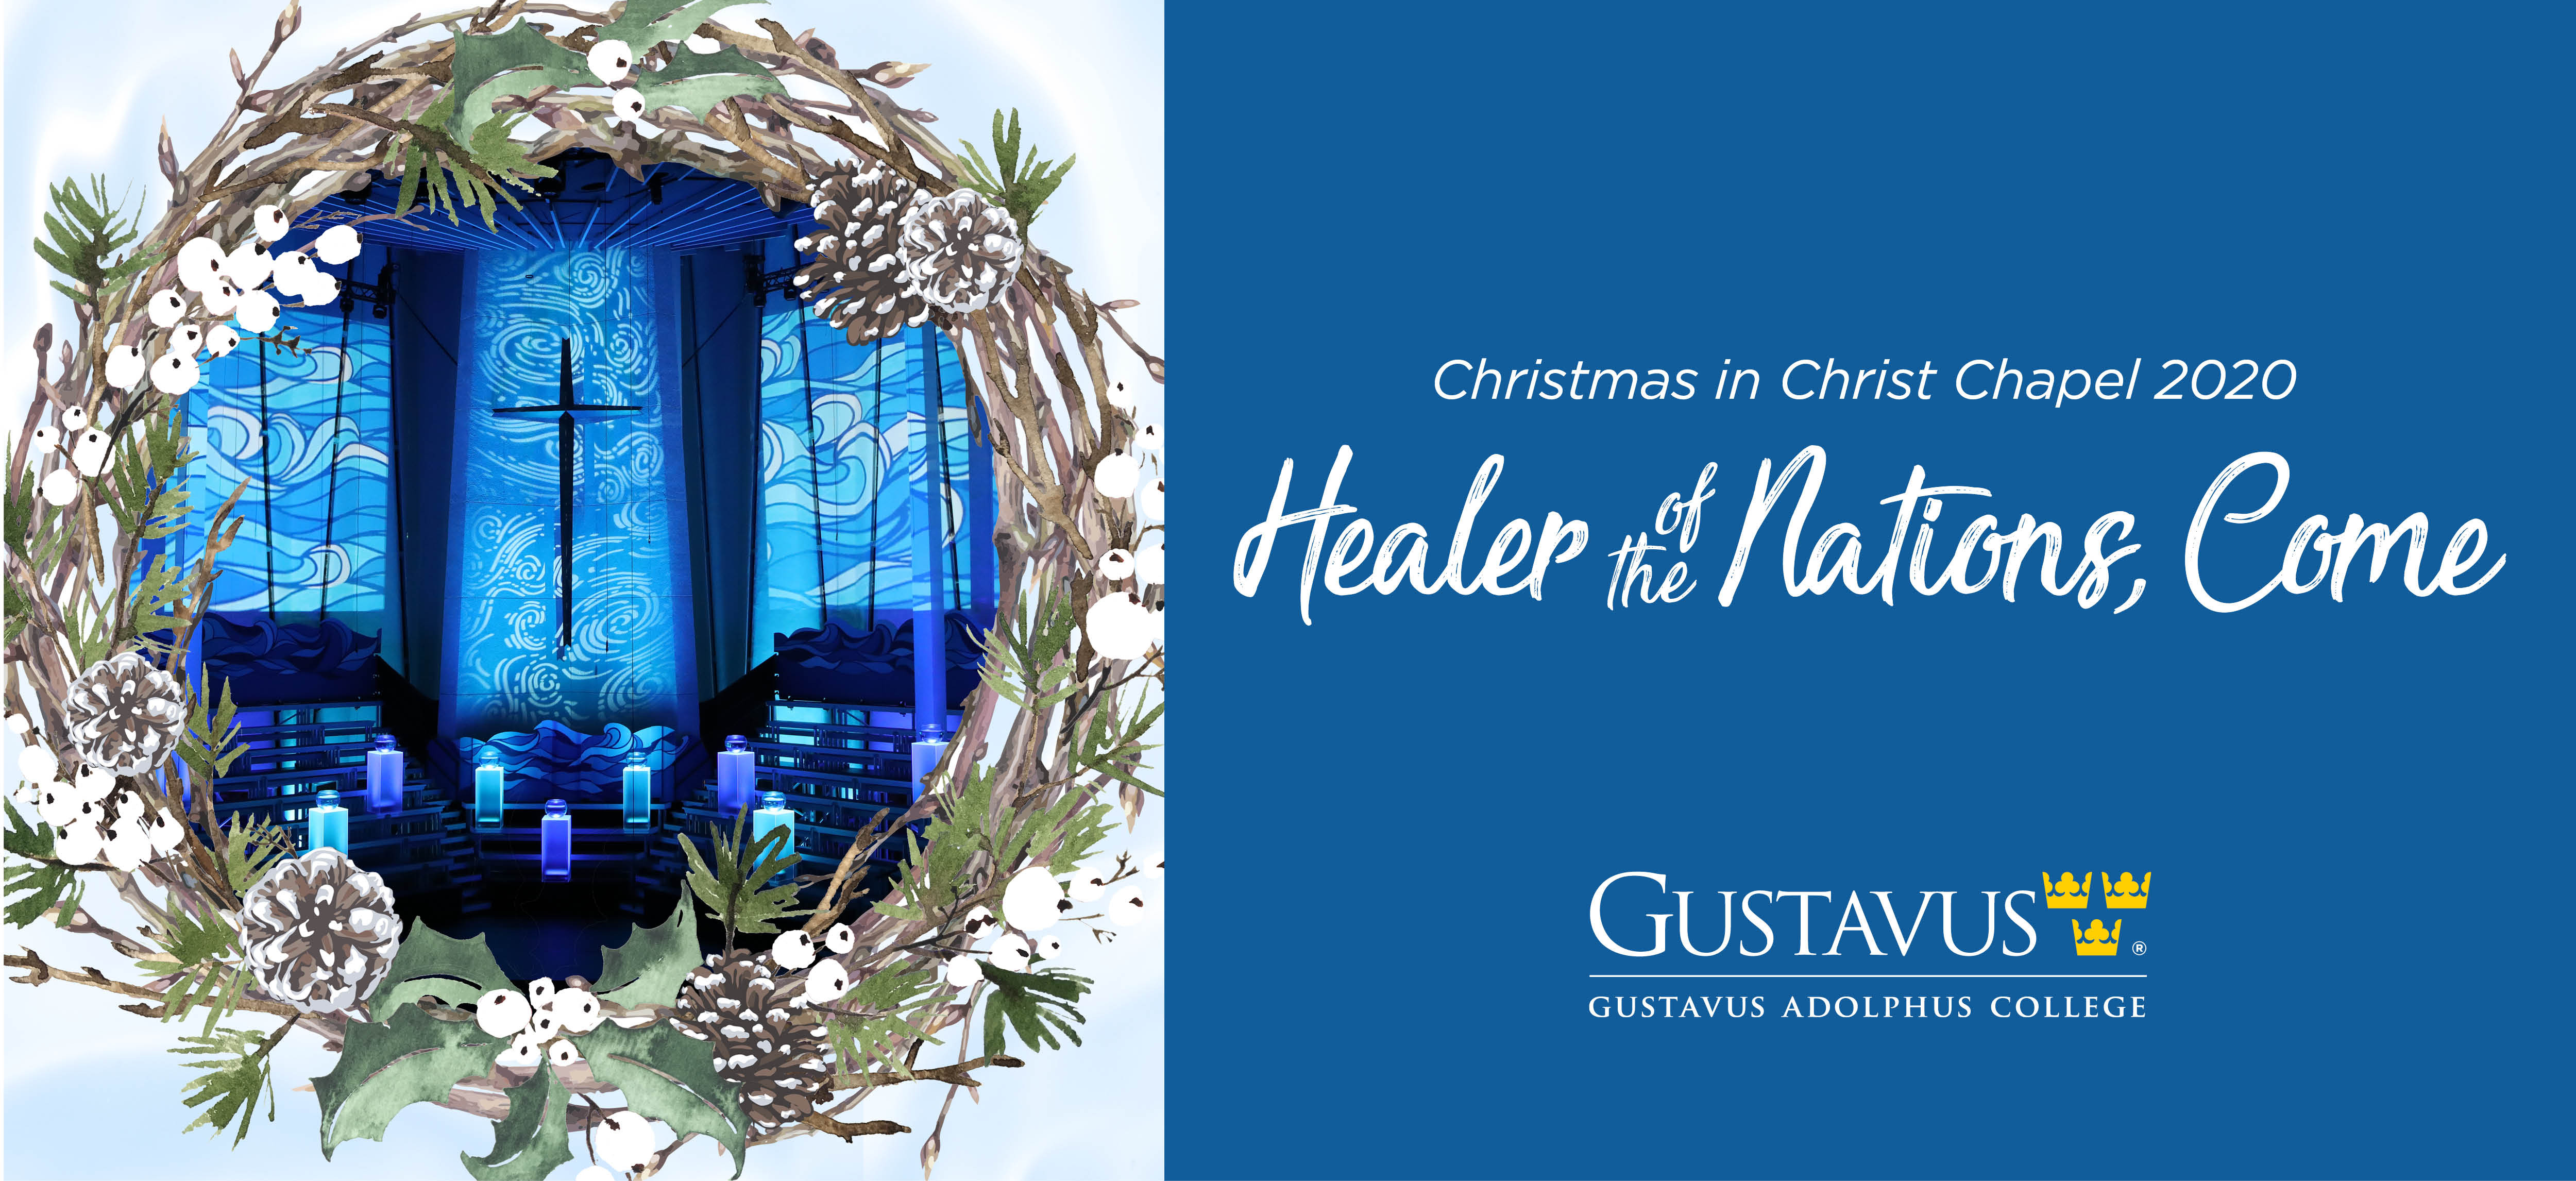 Christmas in Christ Chapel 2020 logo in blue with cross in center of wreath